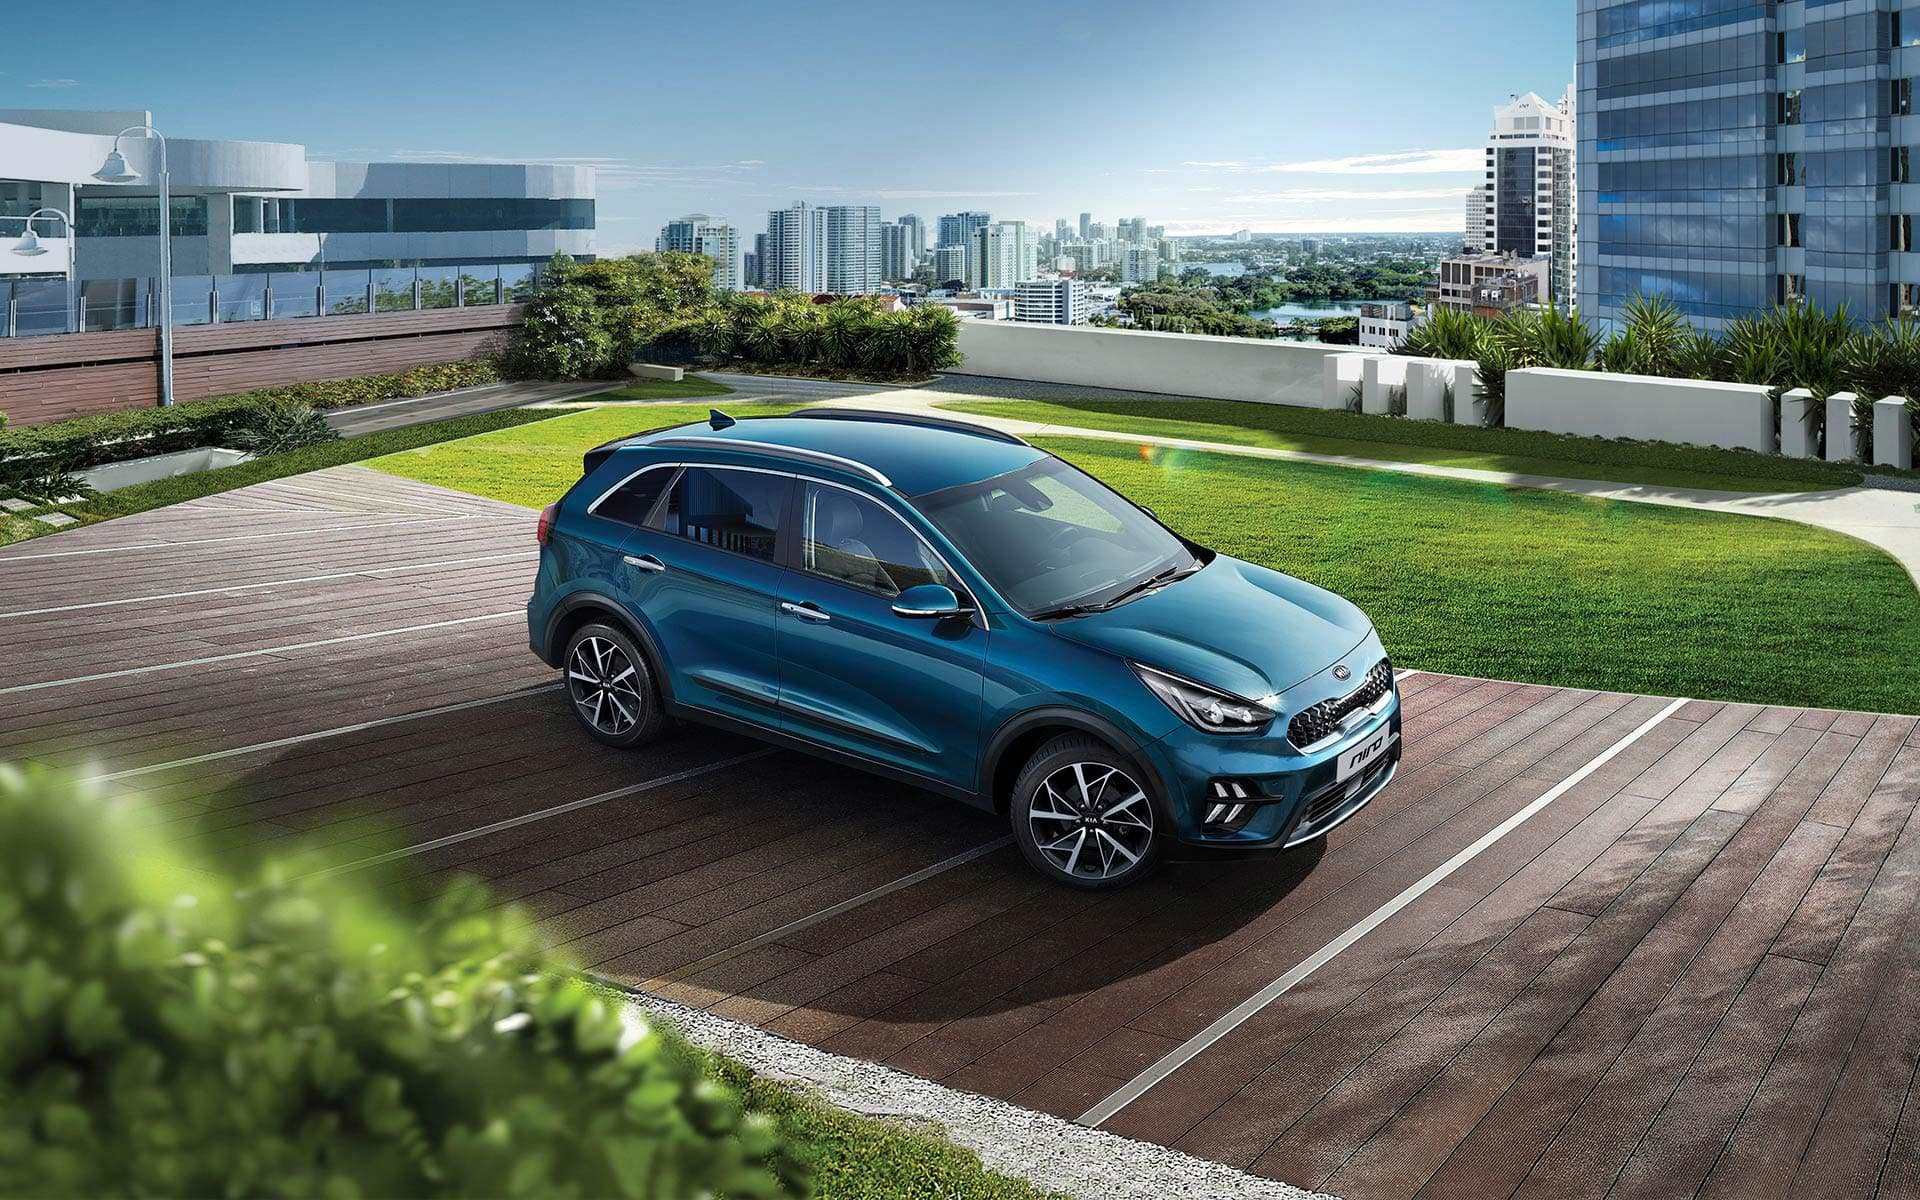 Kia Niro crossover design